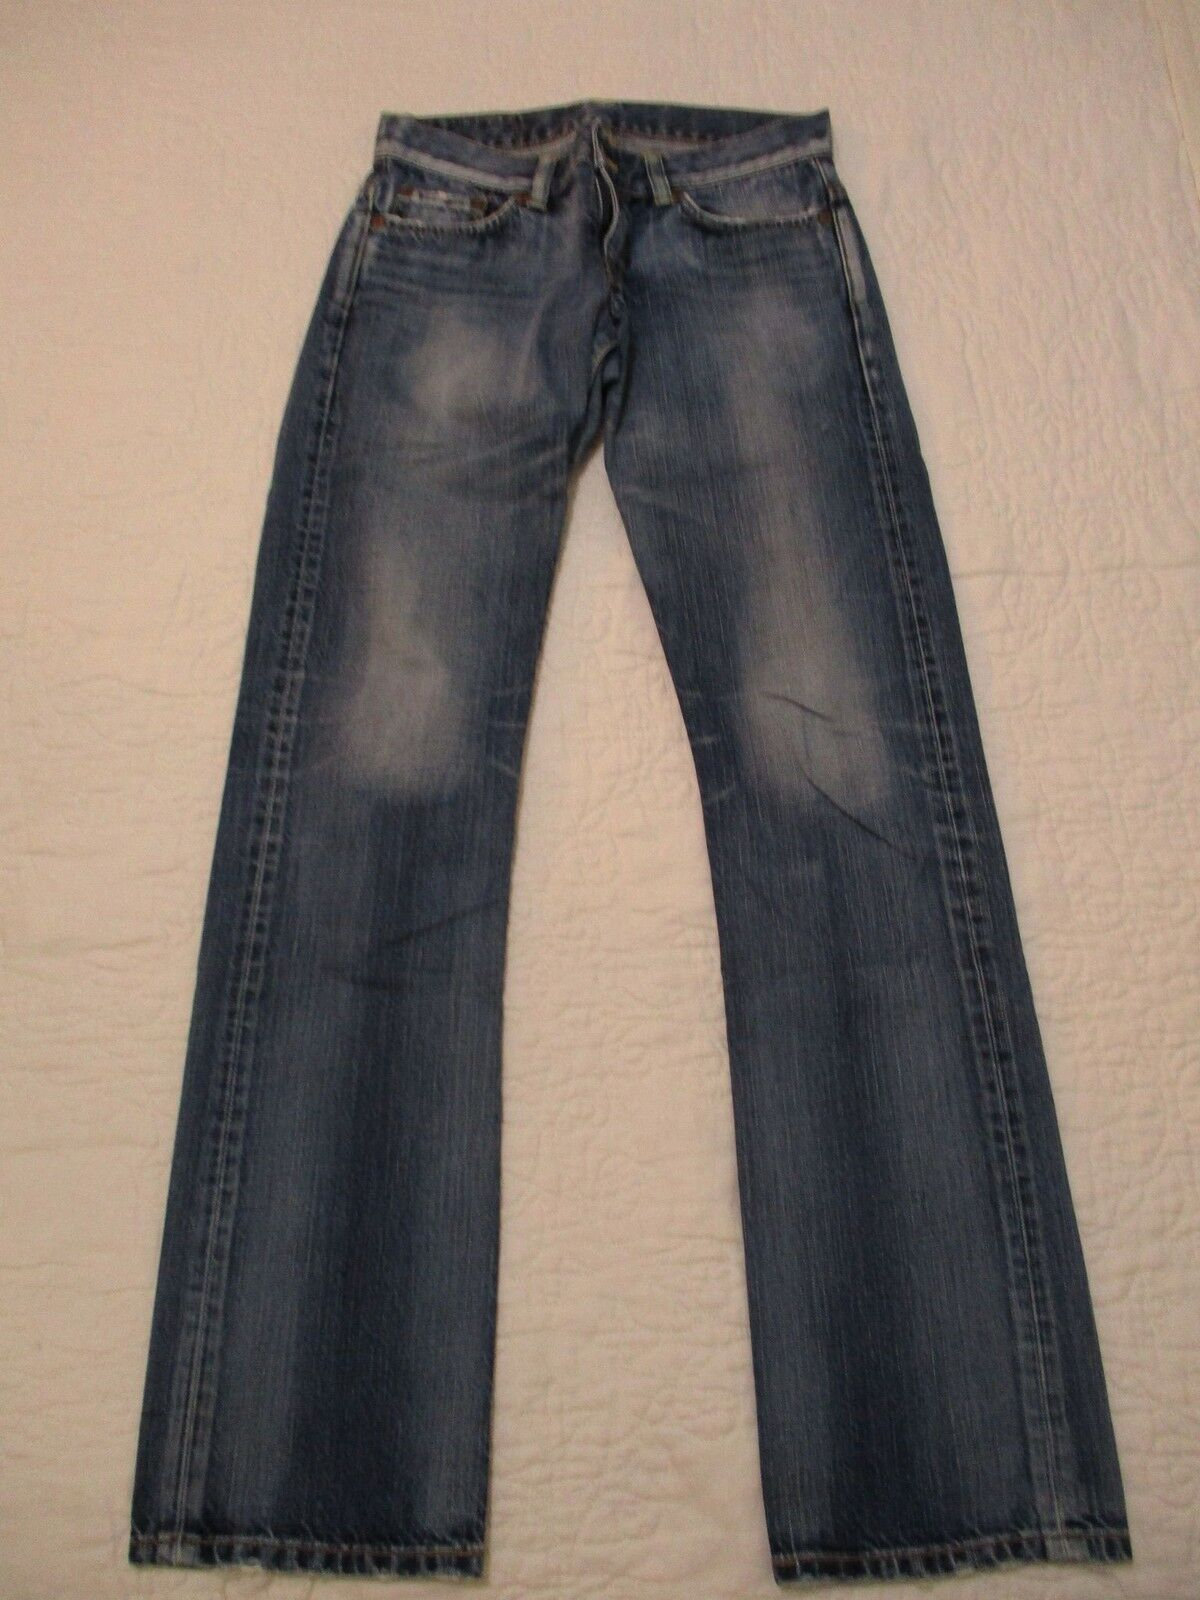 Edwin Mens bluee Jeans Size 29 31x32.5 Japan Made